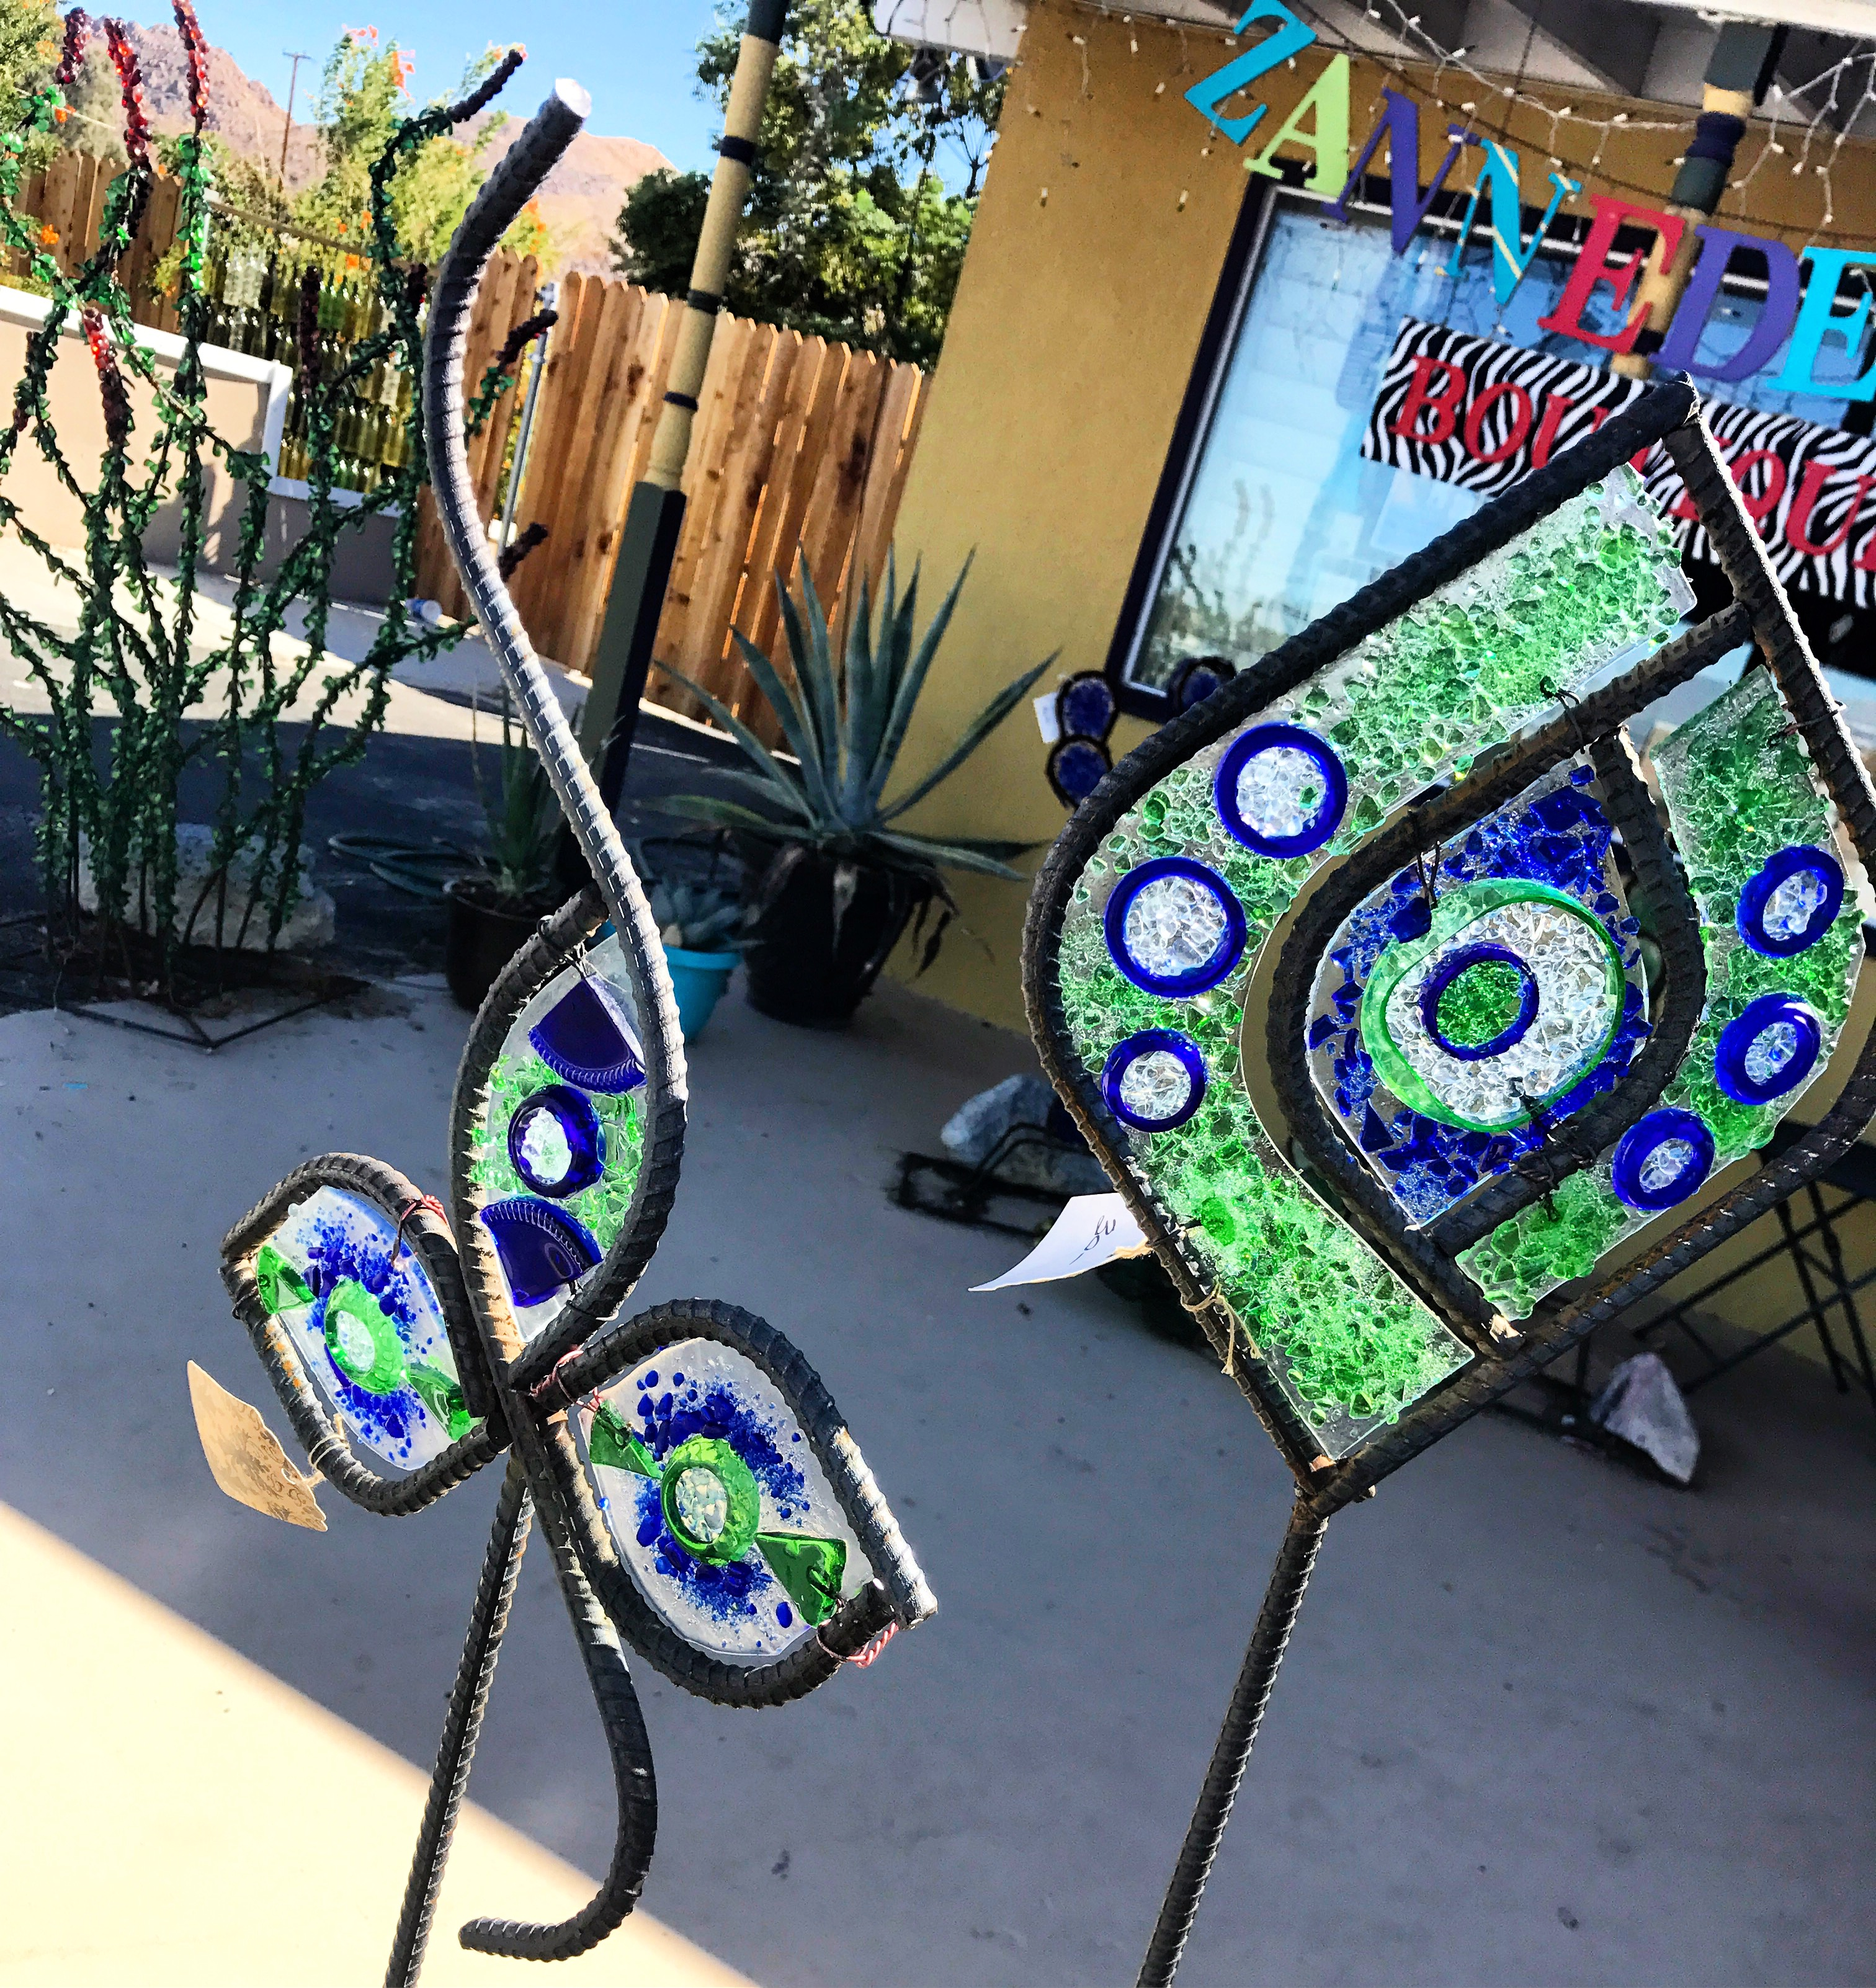 Glass art from recycled bottles  | Zannedelions